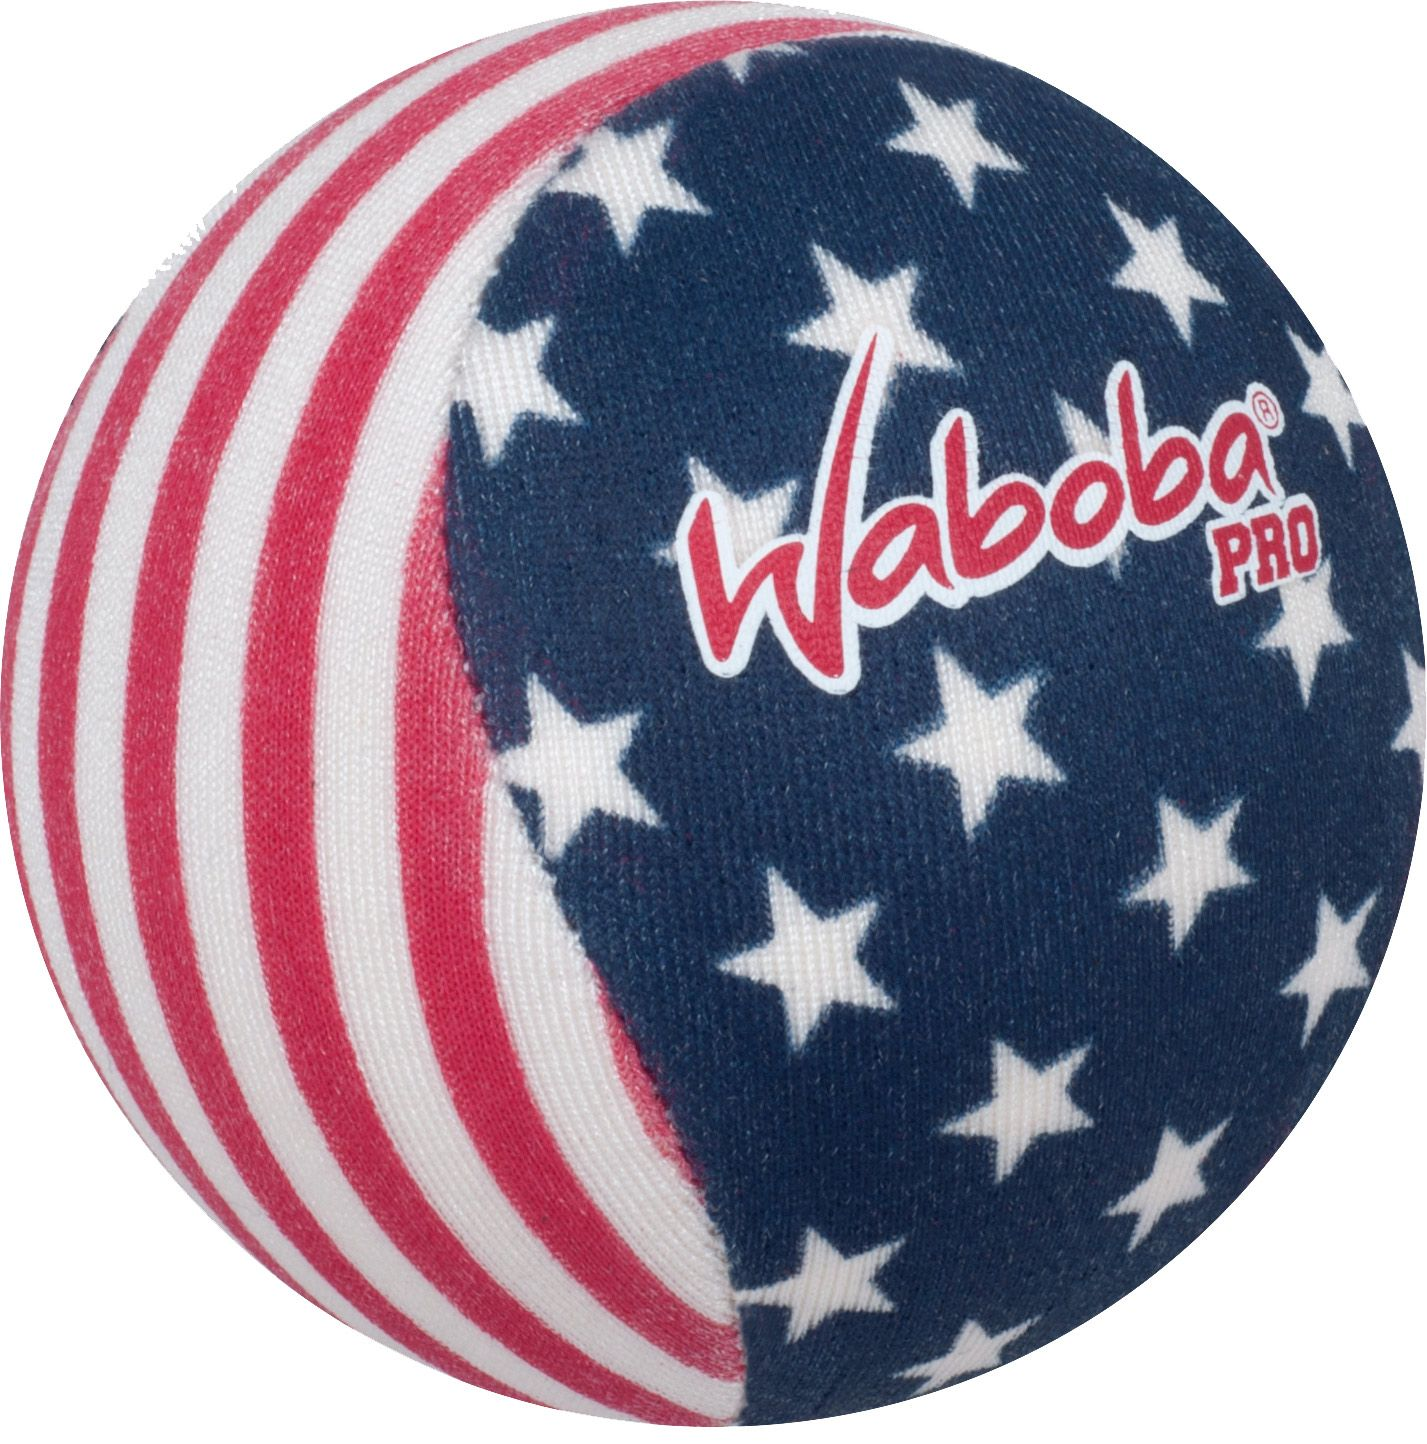 Game on closeouts sporting goods - Product Image Waboba Pro Water Ball